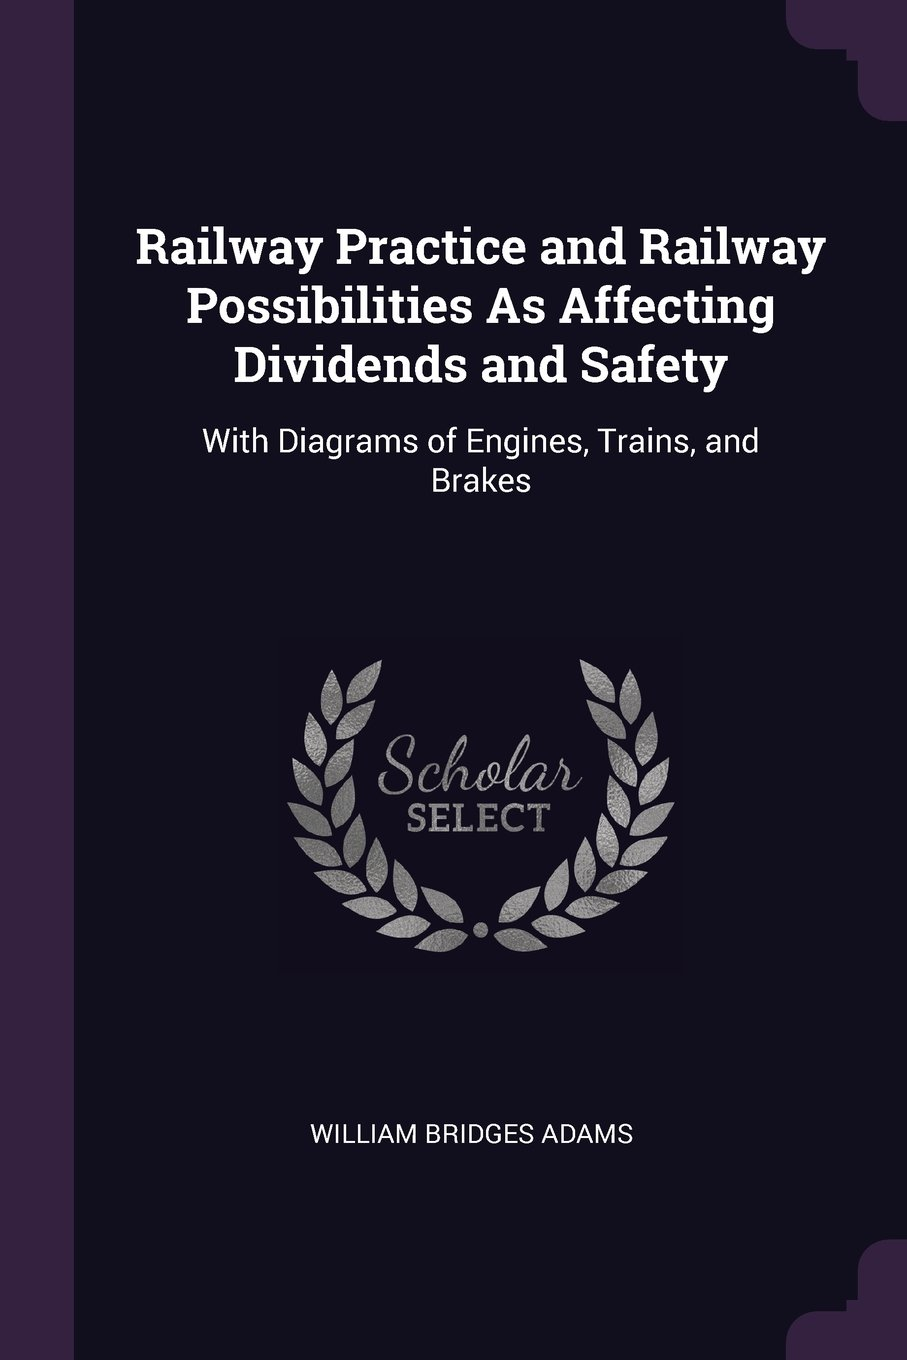 Read Online Railway Practice and Railway Possibilities As Affecting Dividends and Safety: With Diagrams of Engines, Trains, and Brakes PDF